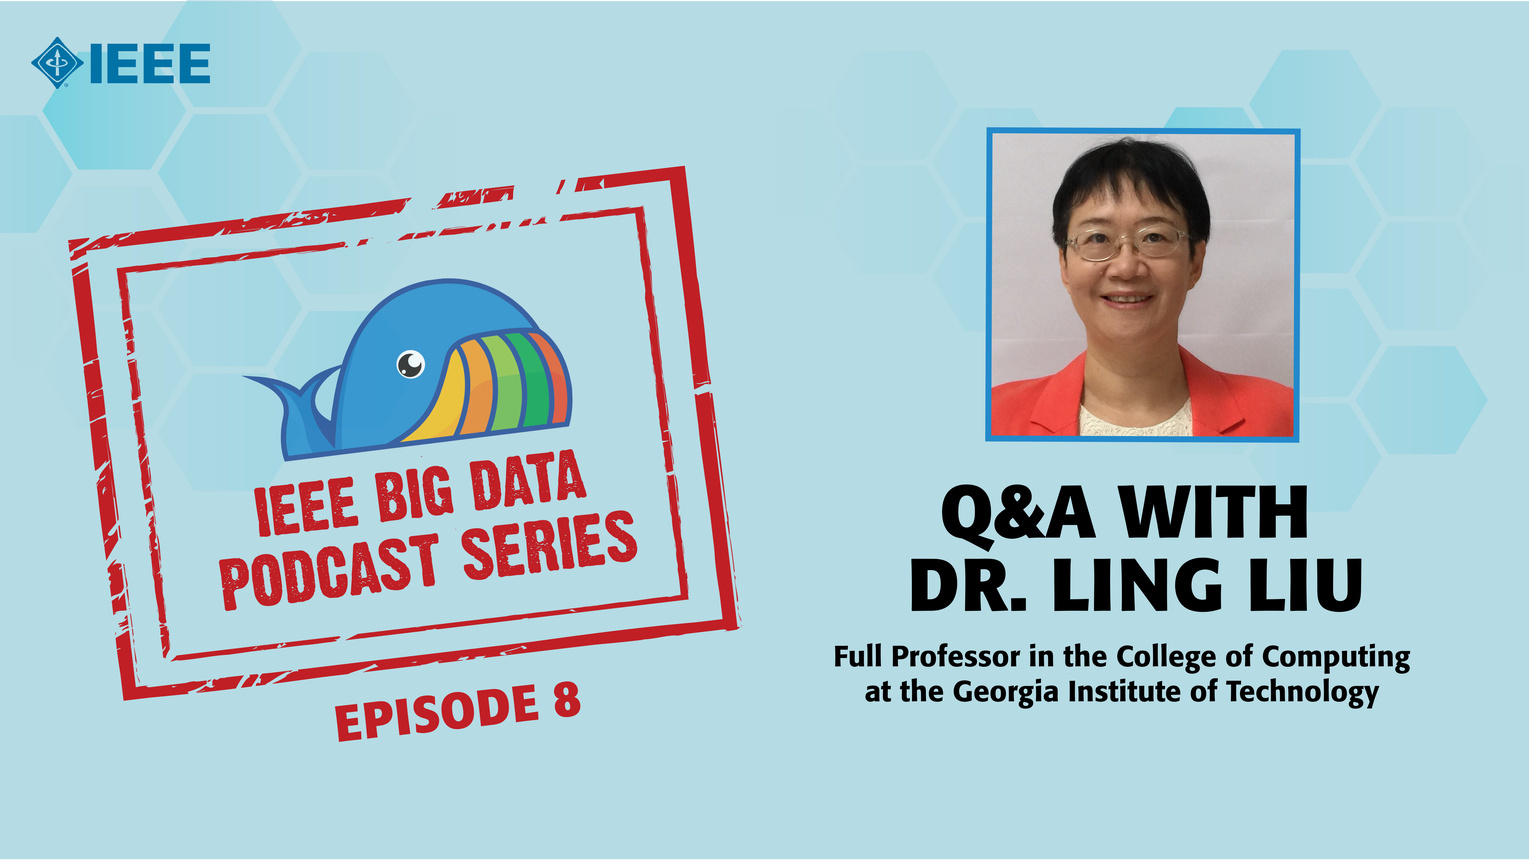 Q&A with Dr. Ling Liu: IEEE Big Data Podcast, Episode 8